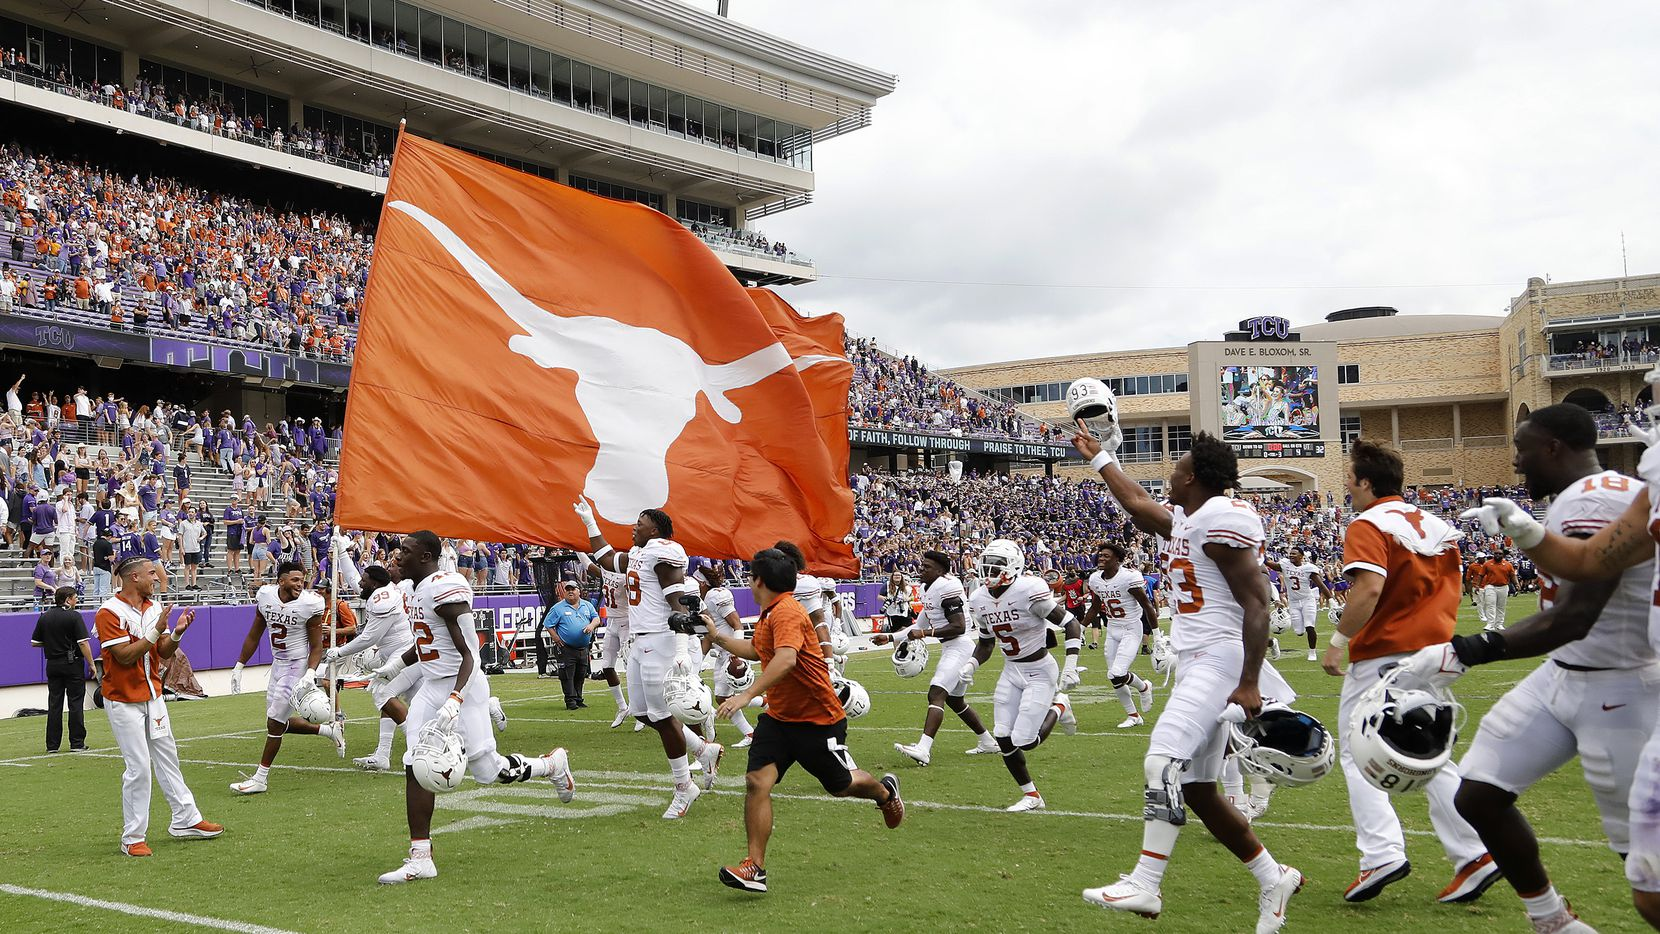 The Texas Longhorns take the field with a spirit flag after their victory as the TCU Horned Frogs hosted the Texas Longhorns on Saturday, October 2, 2021, at Amon G Carter Stadium in Fort Worth. (Stewart F. House/Special Contributor)